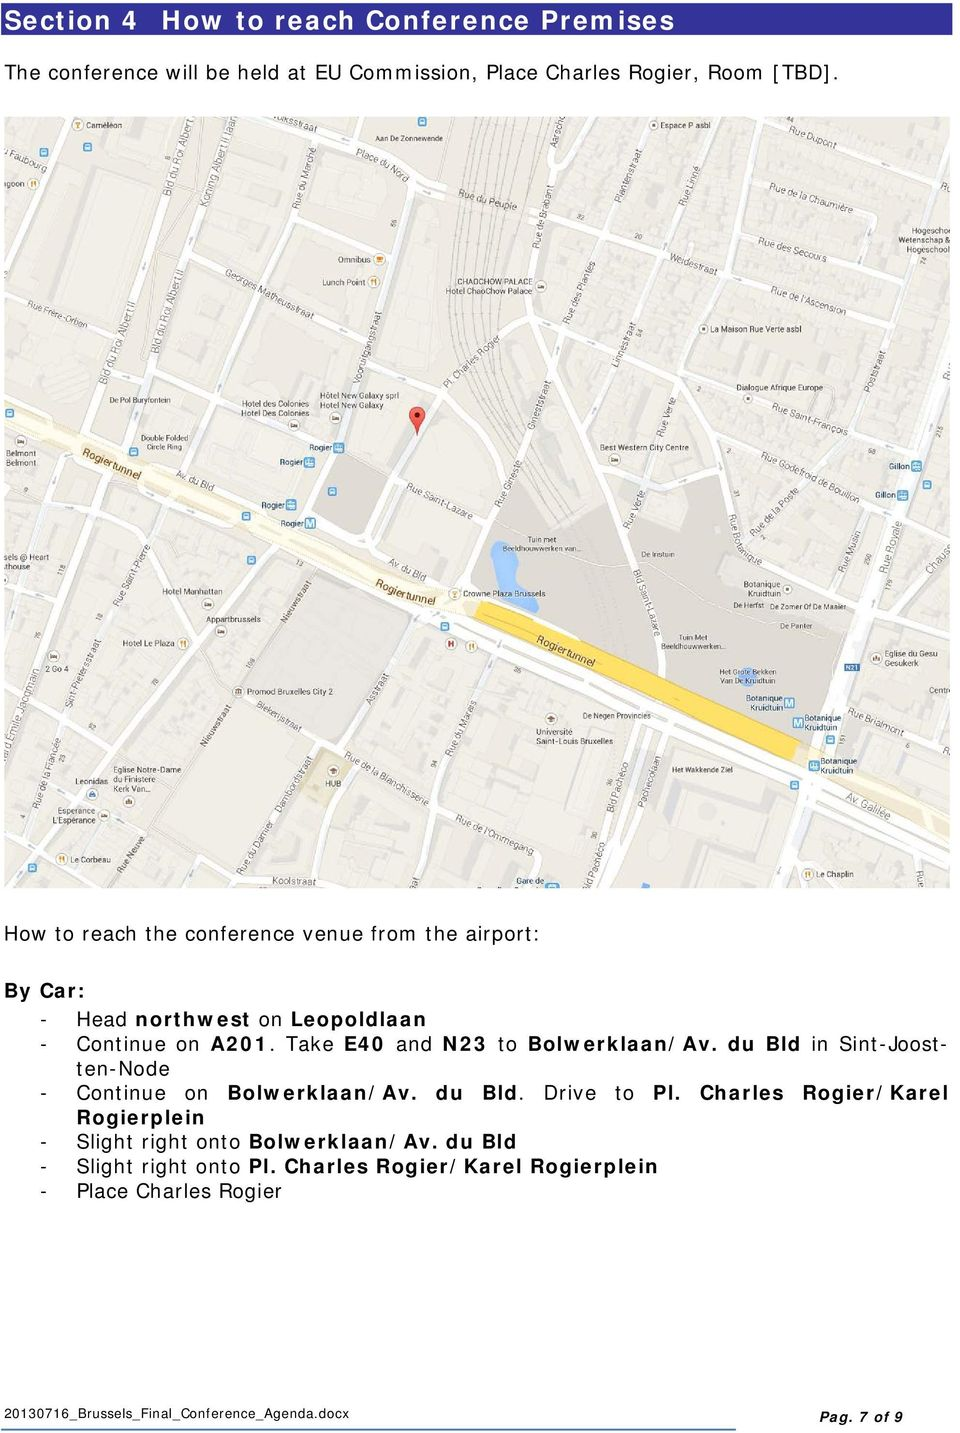 Take E40 and N23 to Bolwerklaan/Av. du Bld in Sint-Joostten-Node - Continue on Bolwerklaan/Av. du Bld. Drive to Pl.